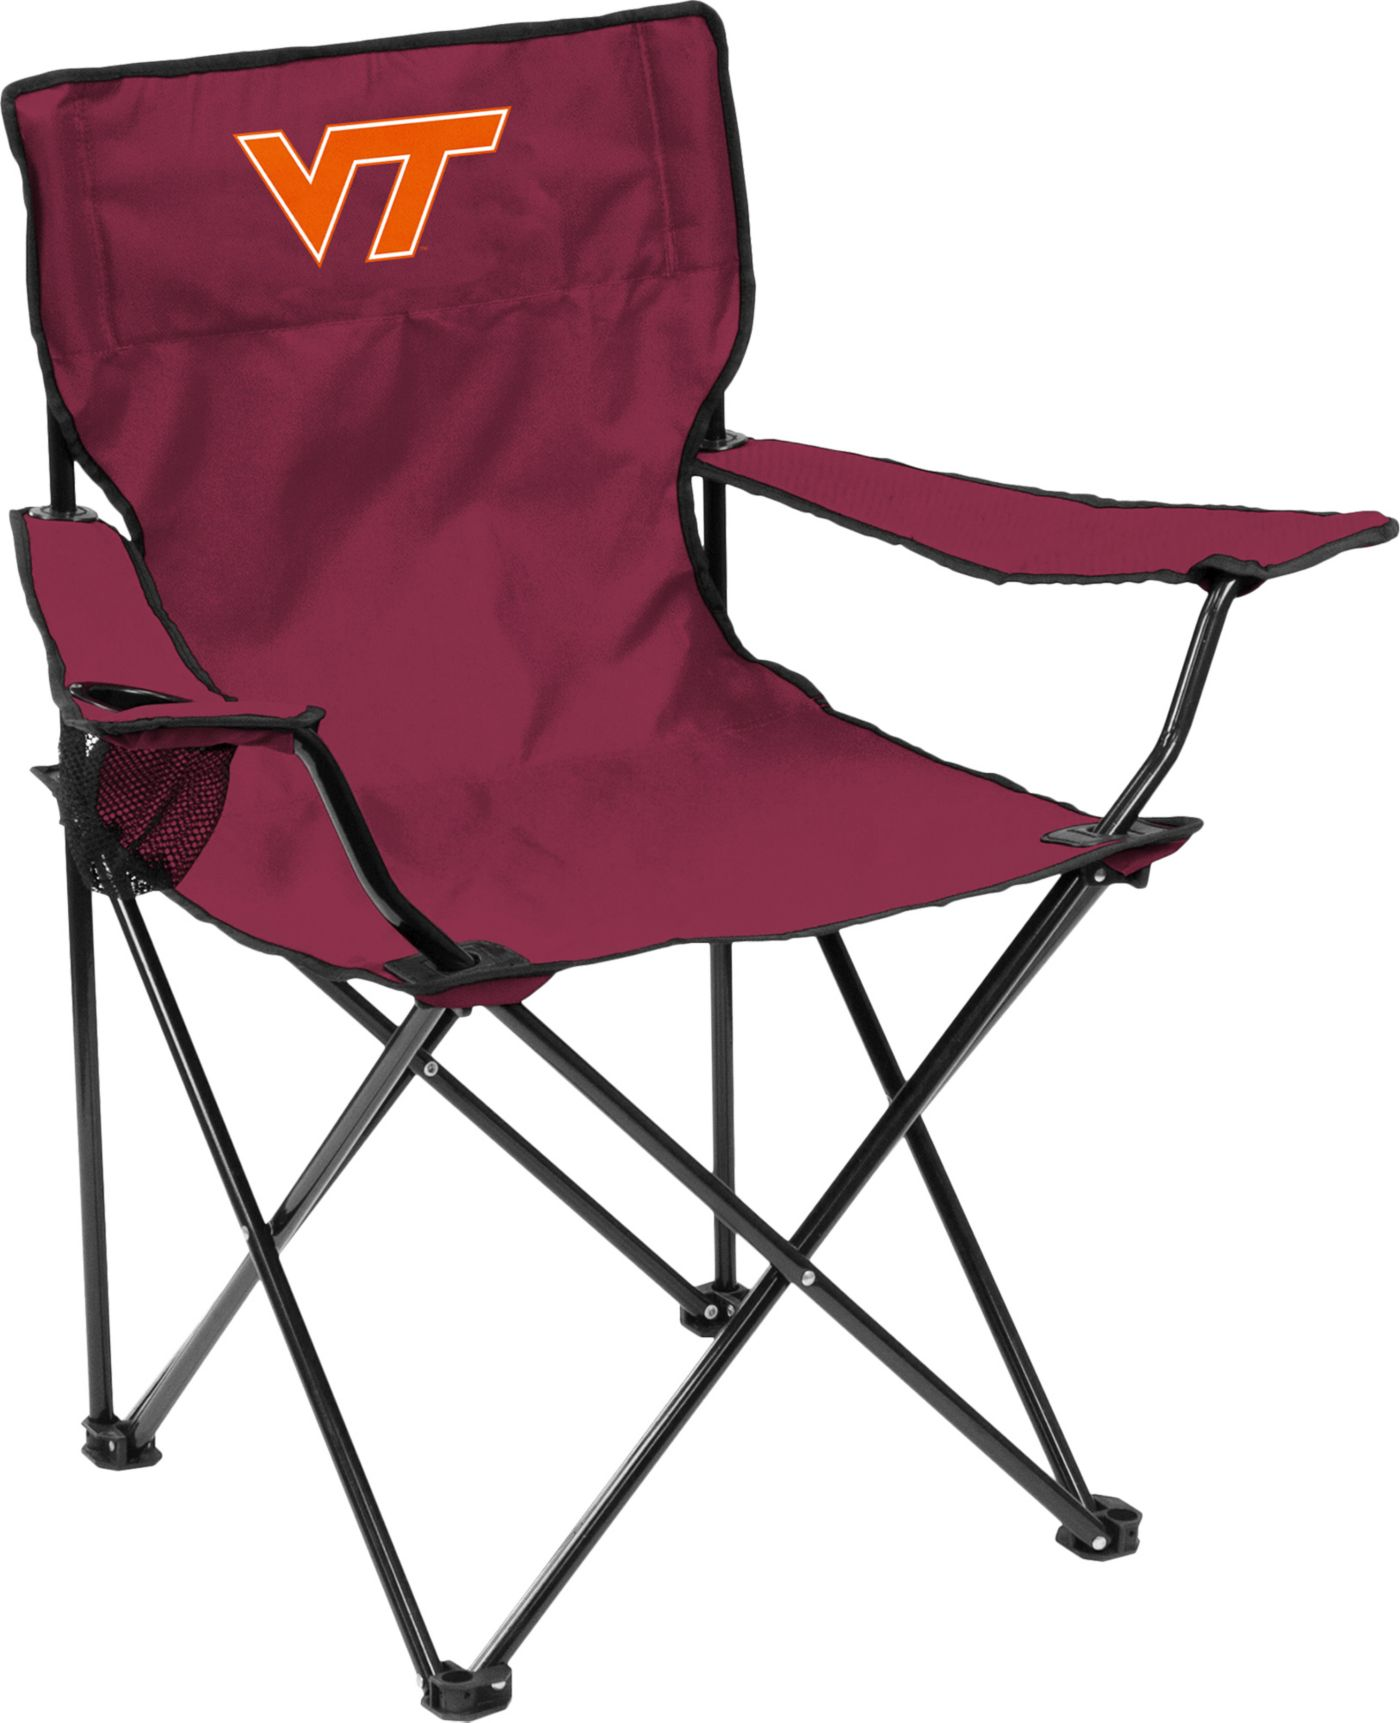 Virginia Tech Hokies Team-Colored Canvas Chair